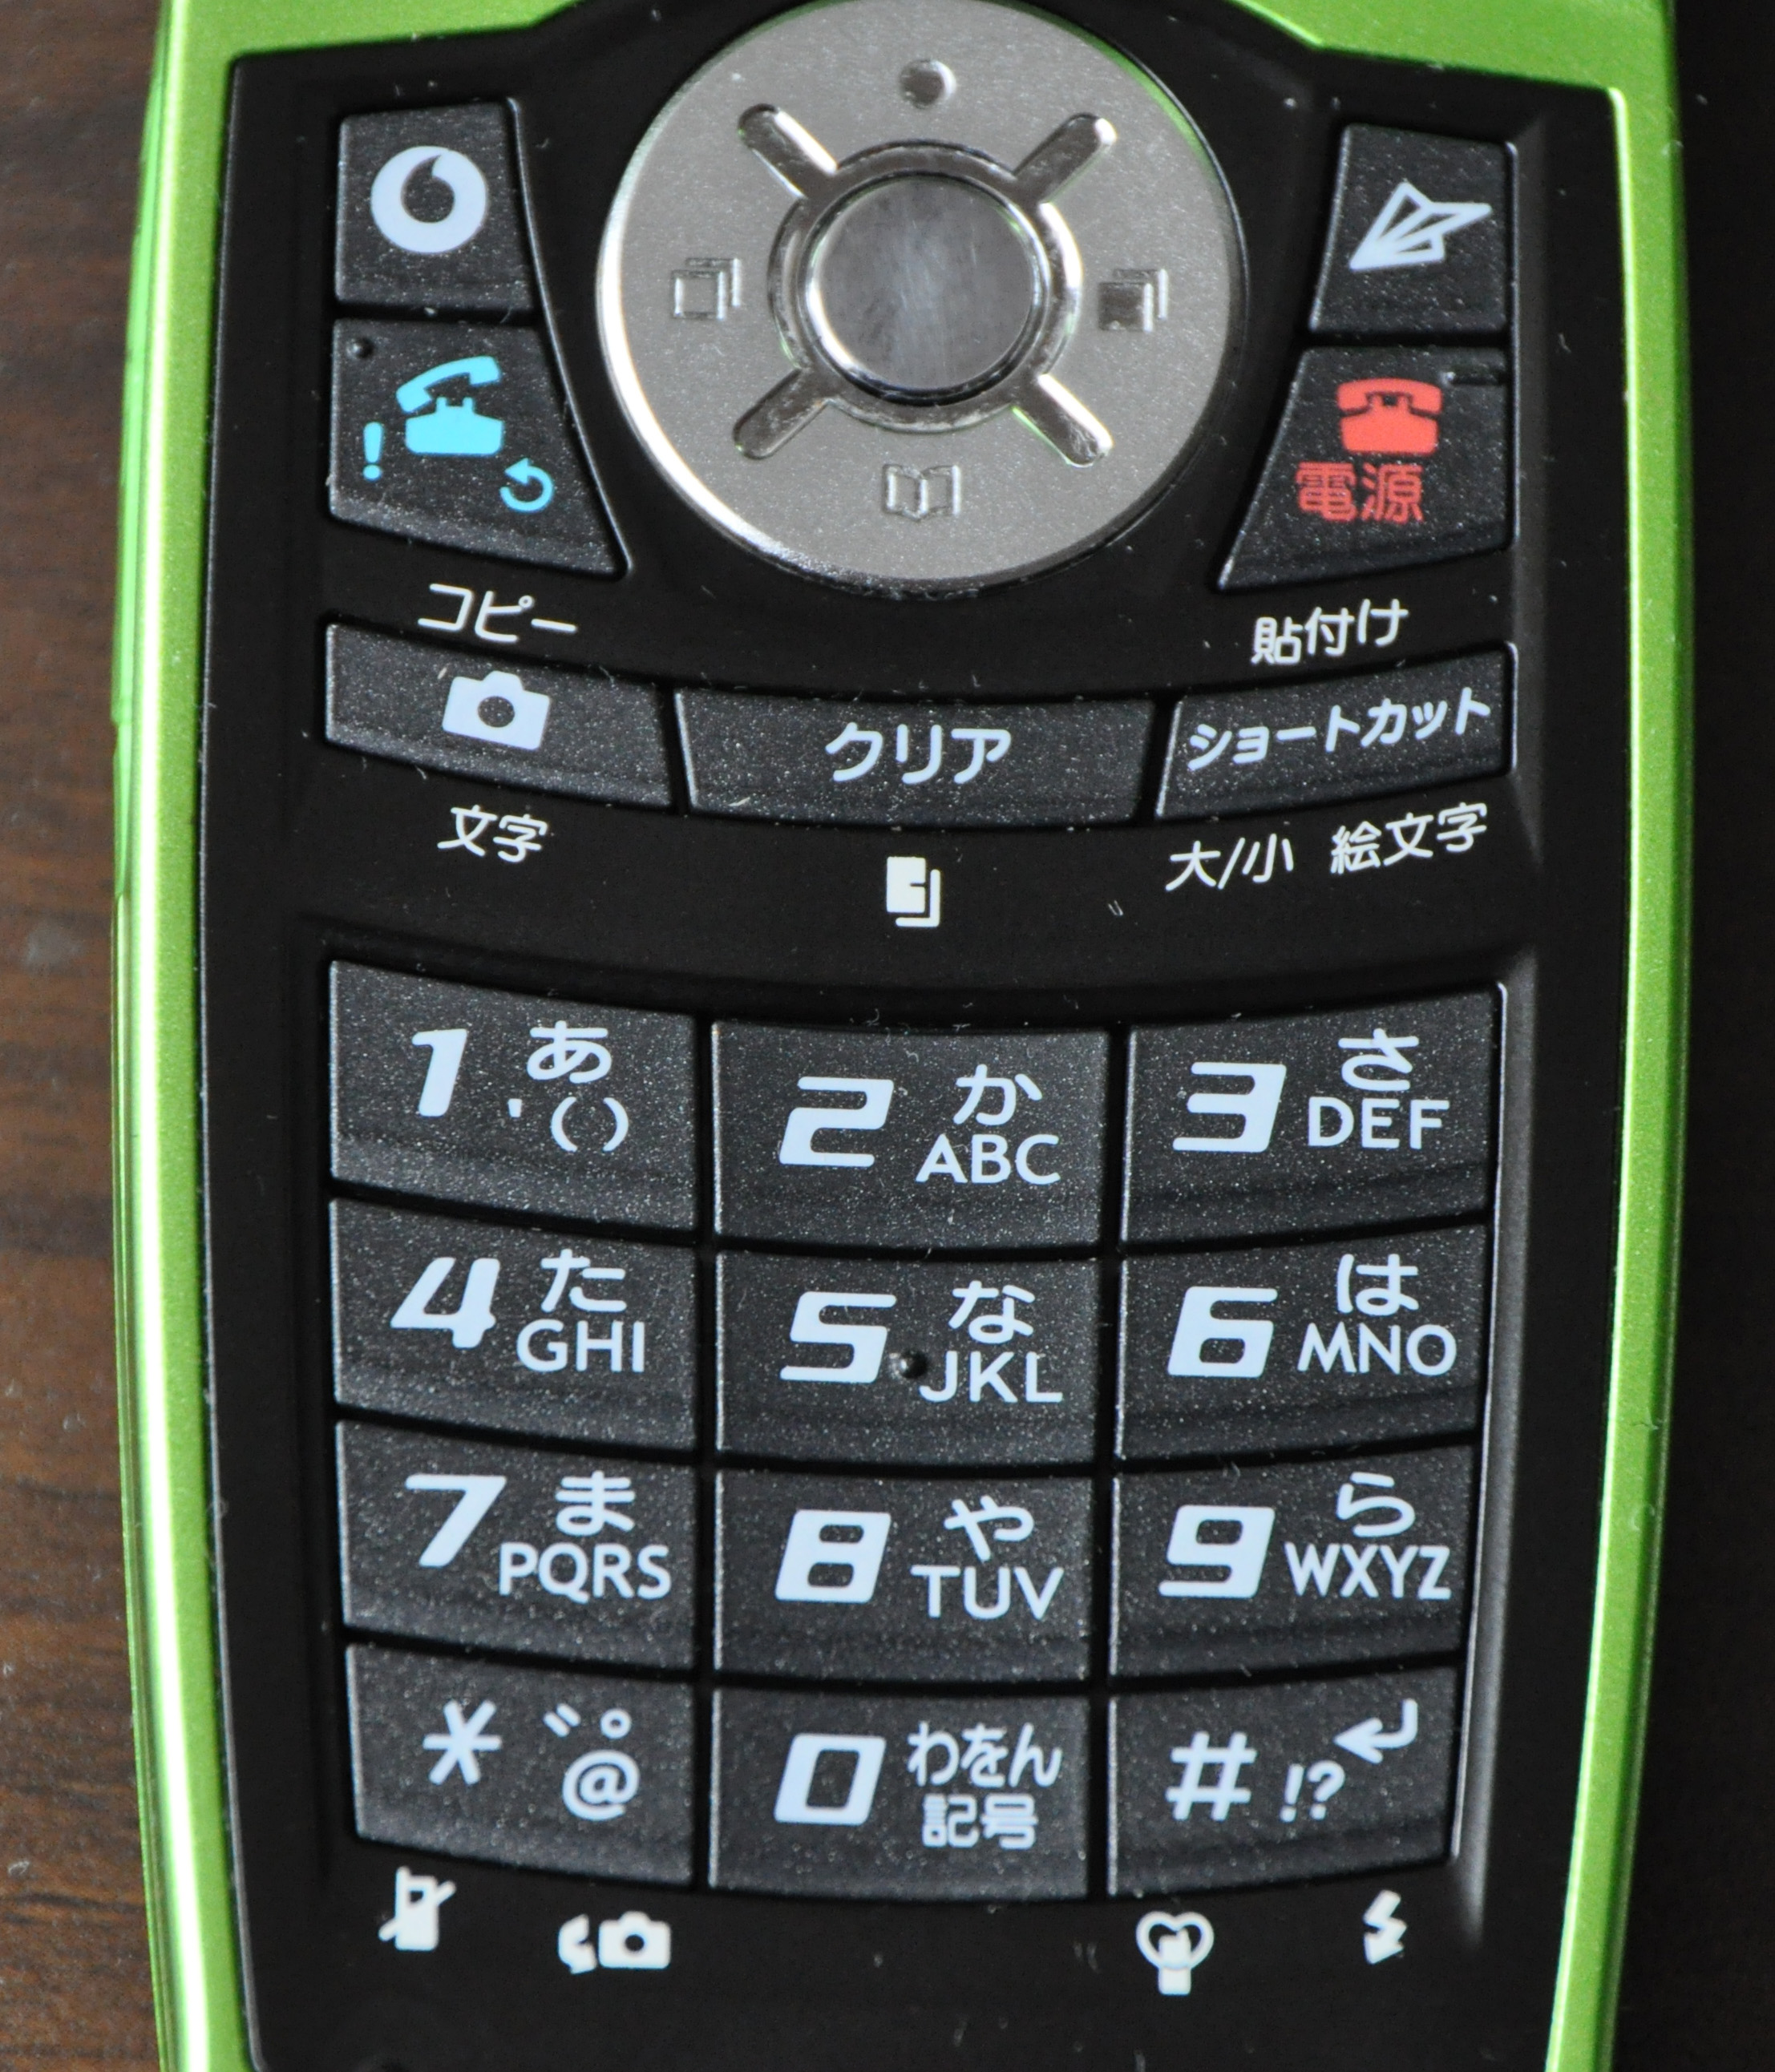 Japanese cell phone plans